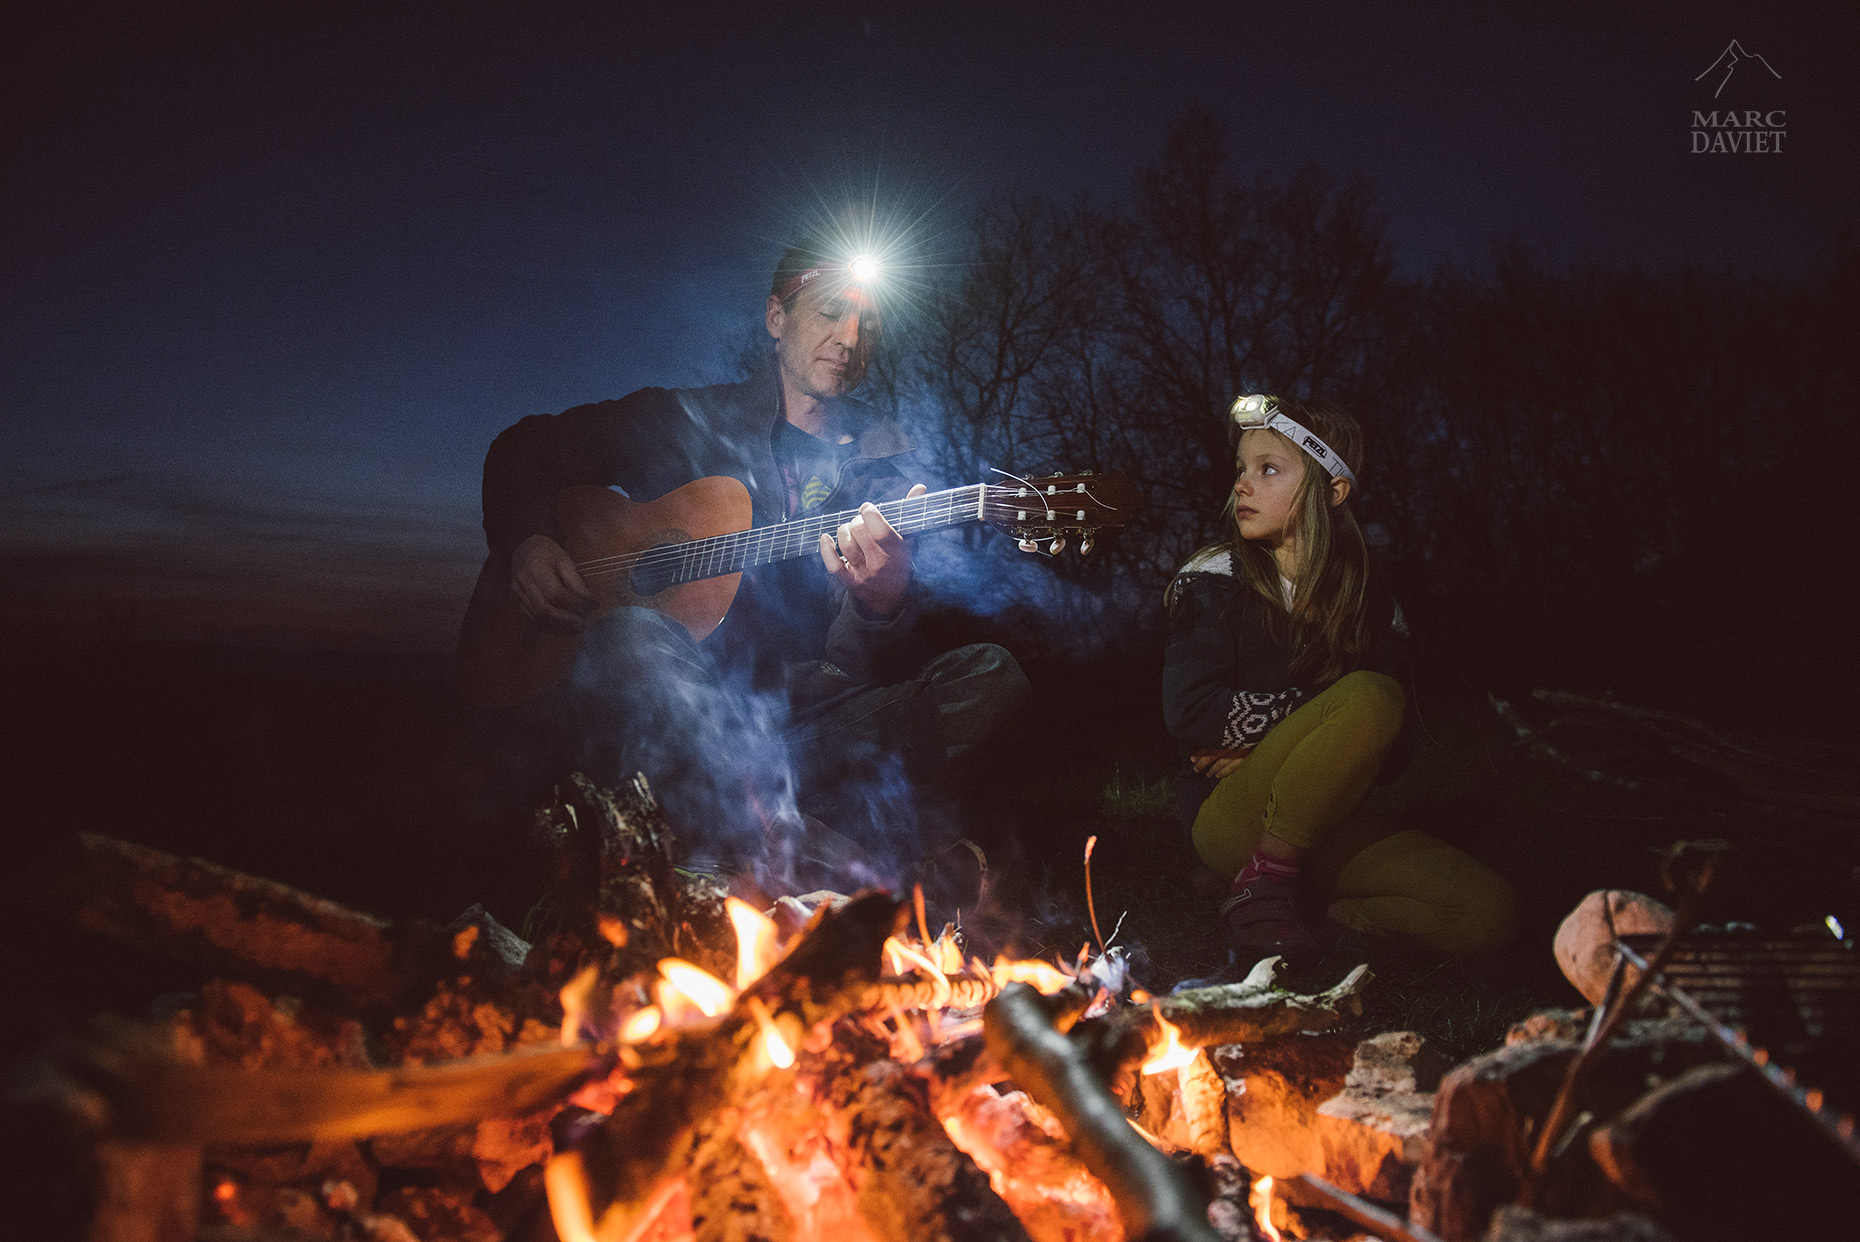 Songs in front of the campfire - Marc Daviet Photography